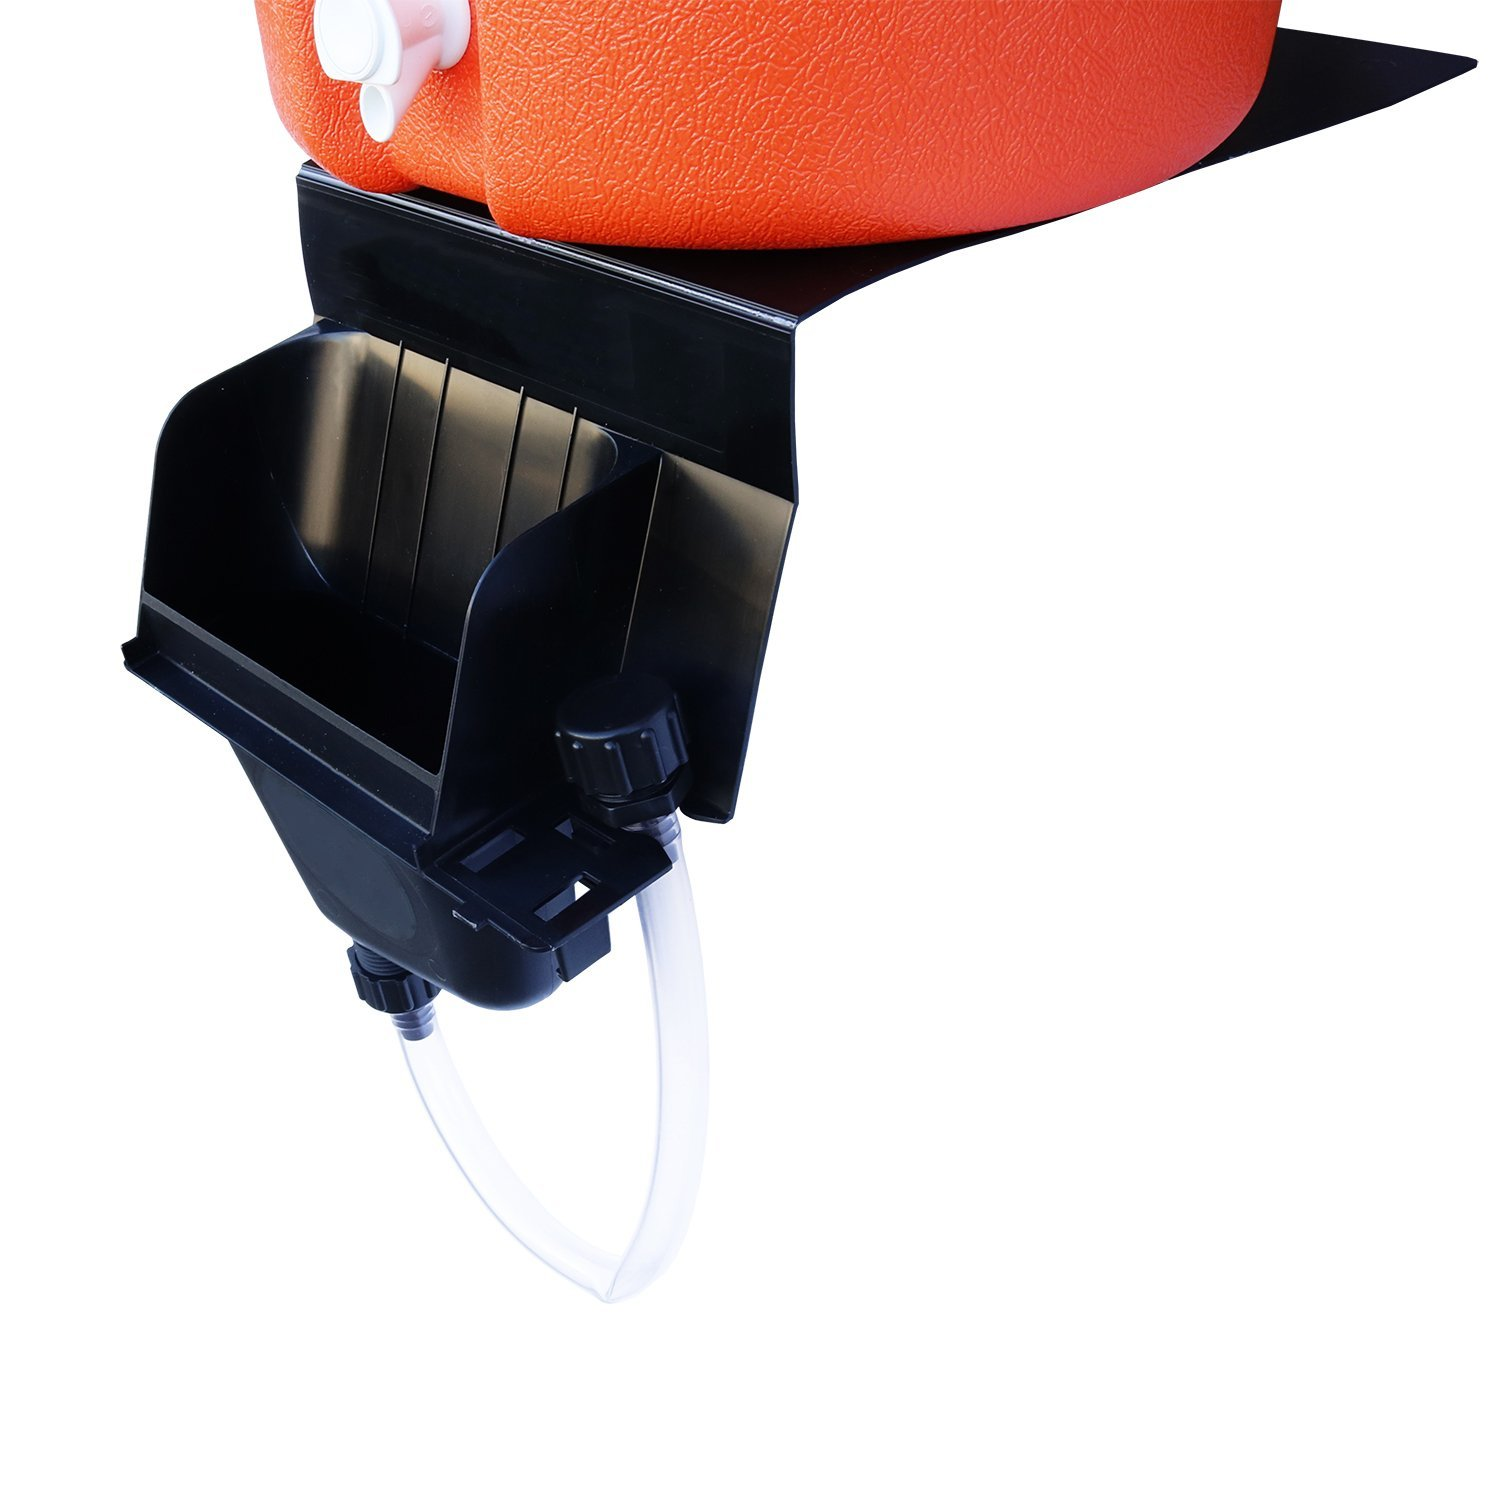 Igloo 5-Gallon Heavy-Duty Beverage Cooler, Orange & Ultimate Drip Catcher Set - Black - Catch All Your Drips, Seeps, Leaks Accidental Pours! by Igloo (Image #7)